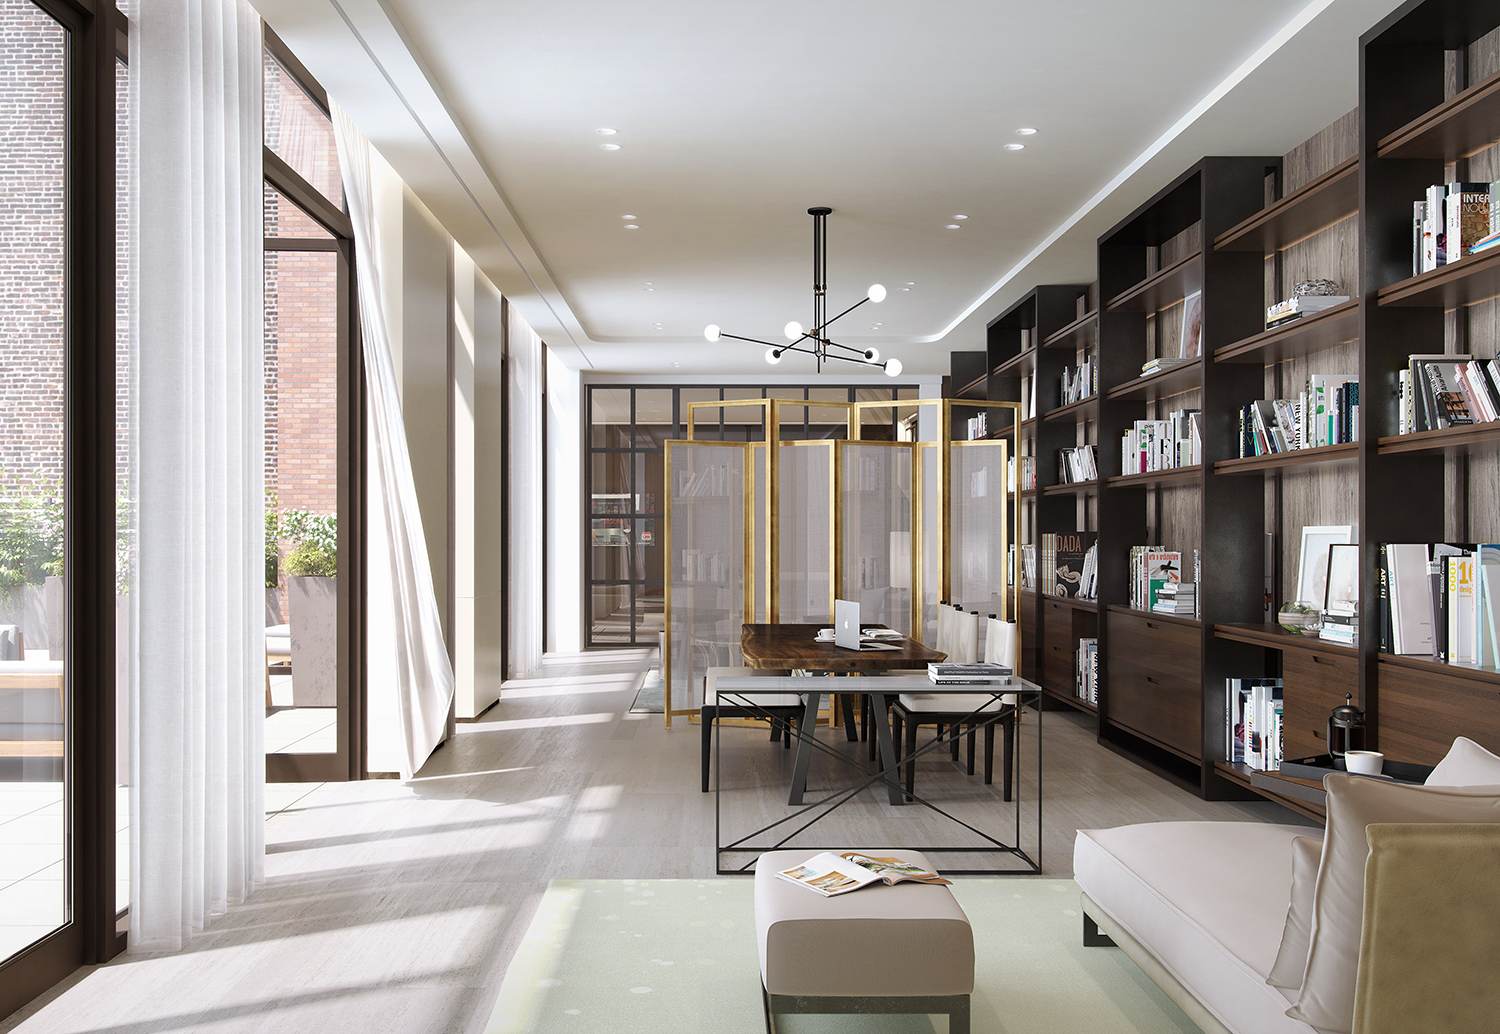 Rendering of the library at 456 Washington Street. Exclusive to YIMBY.